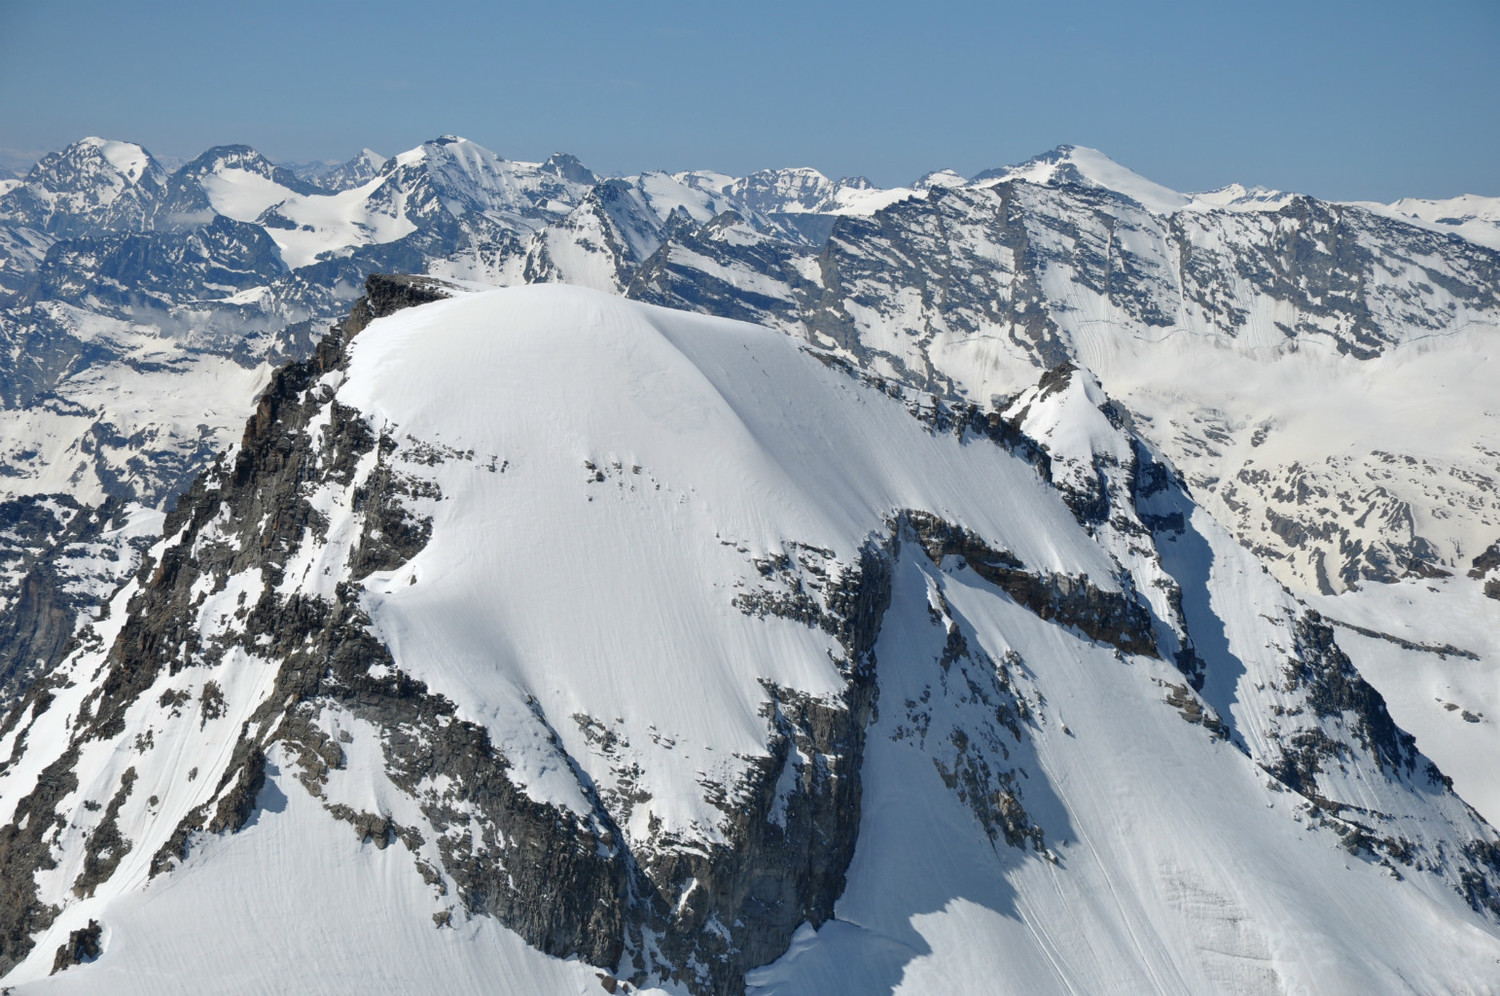 Ciarforon (3641m) : north face. Three climbers on the final snow slope